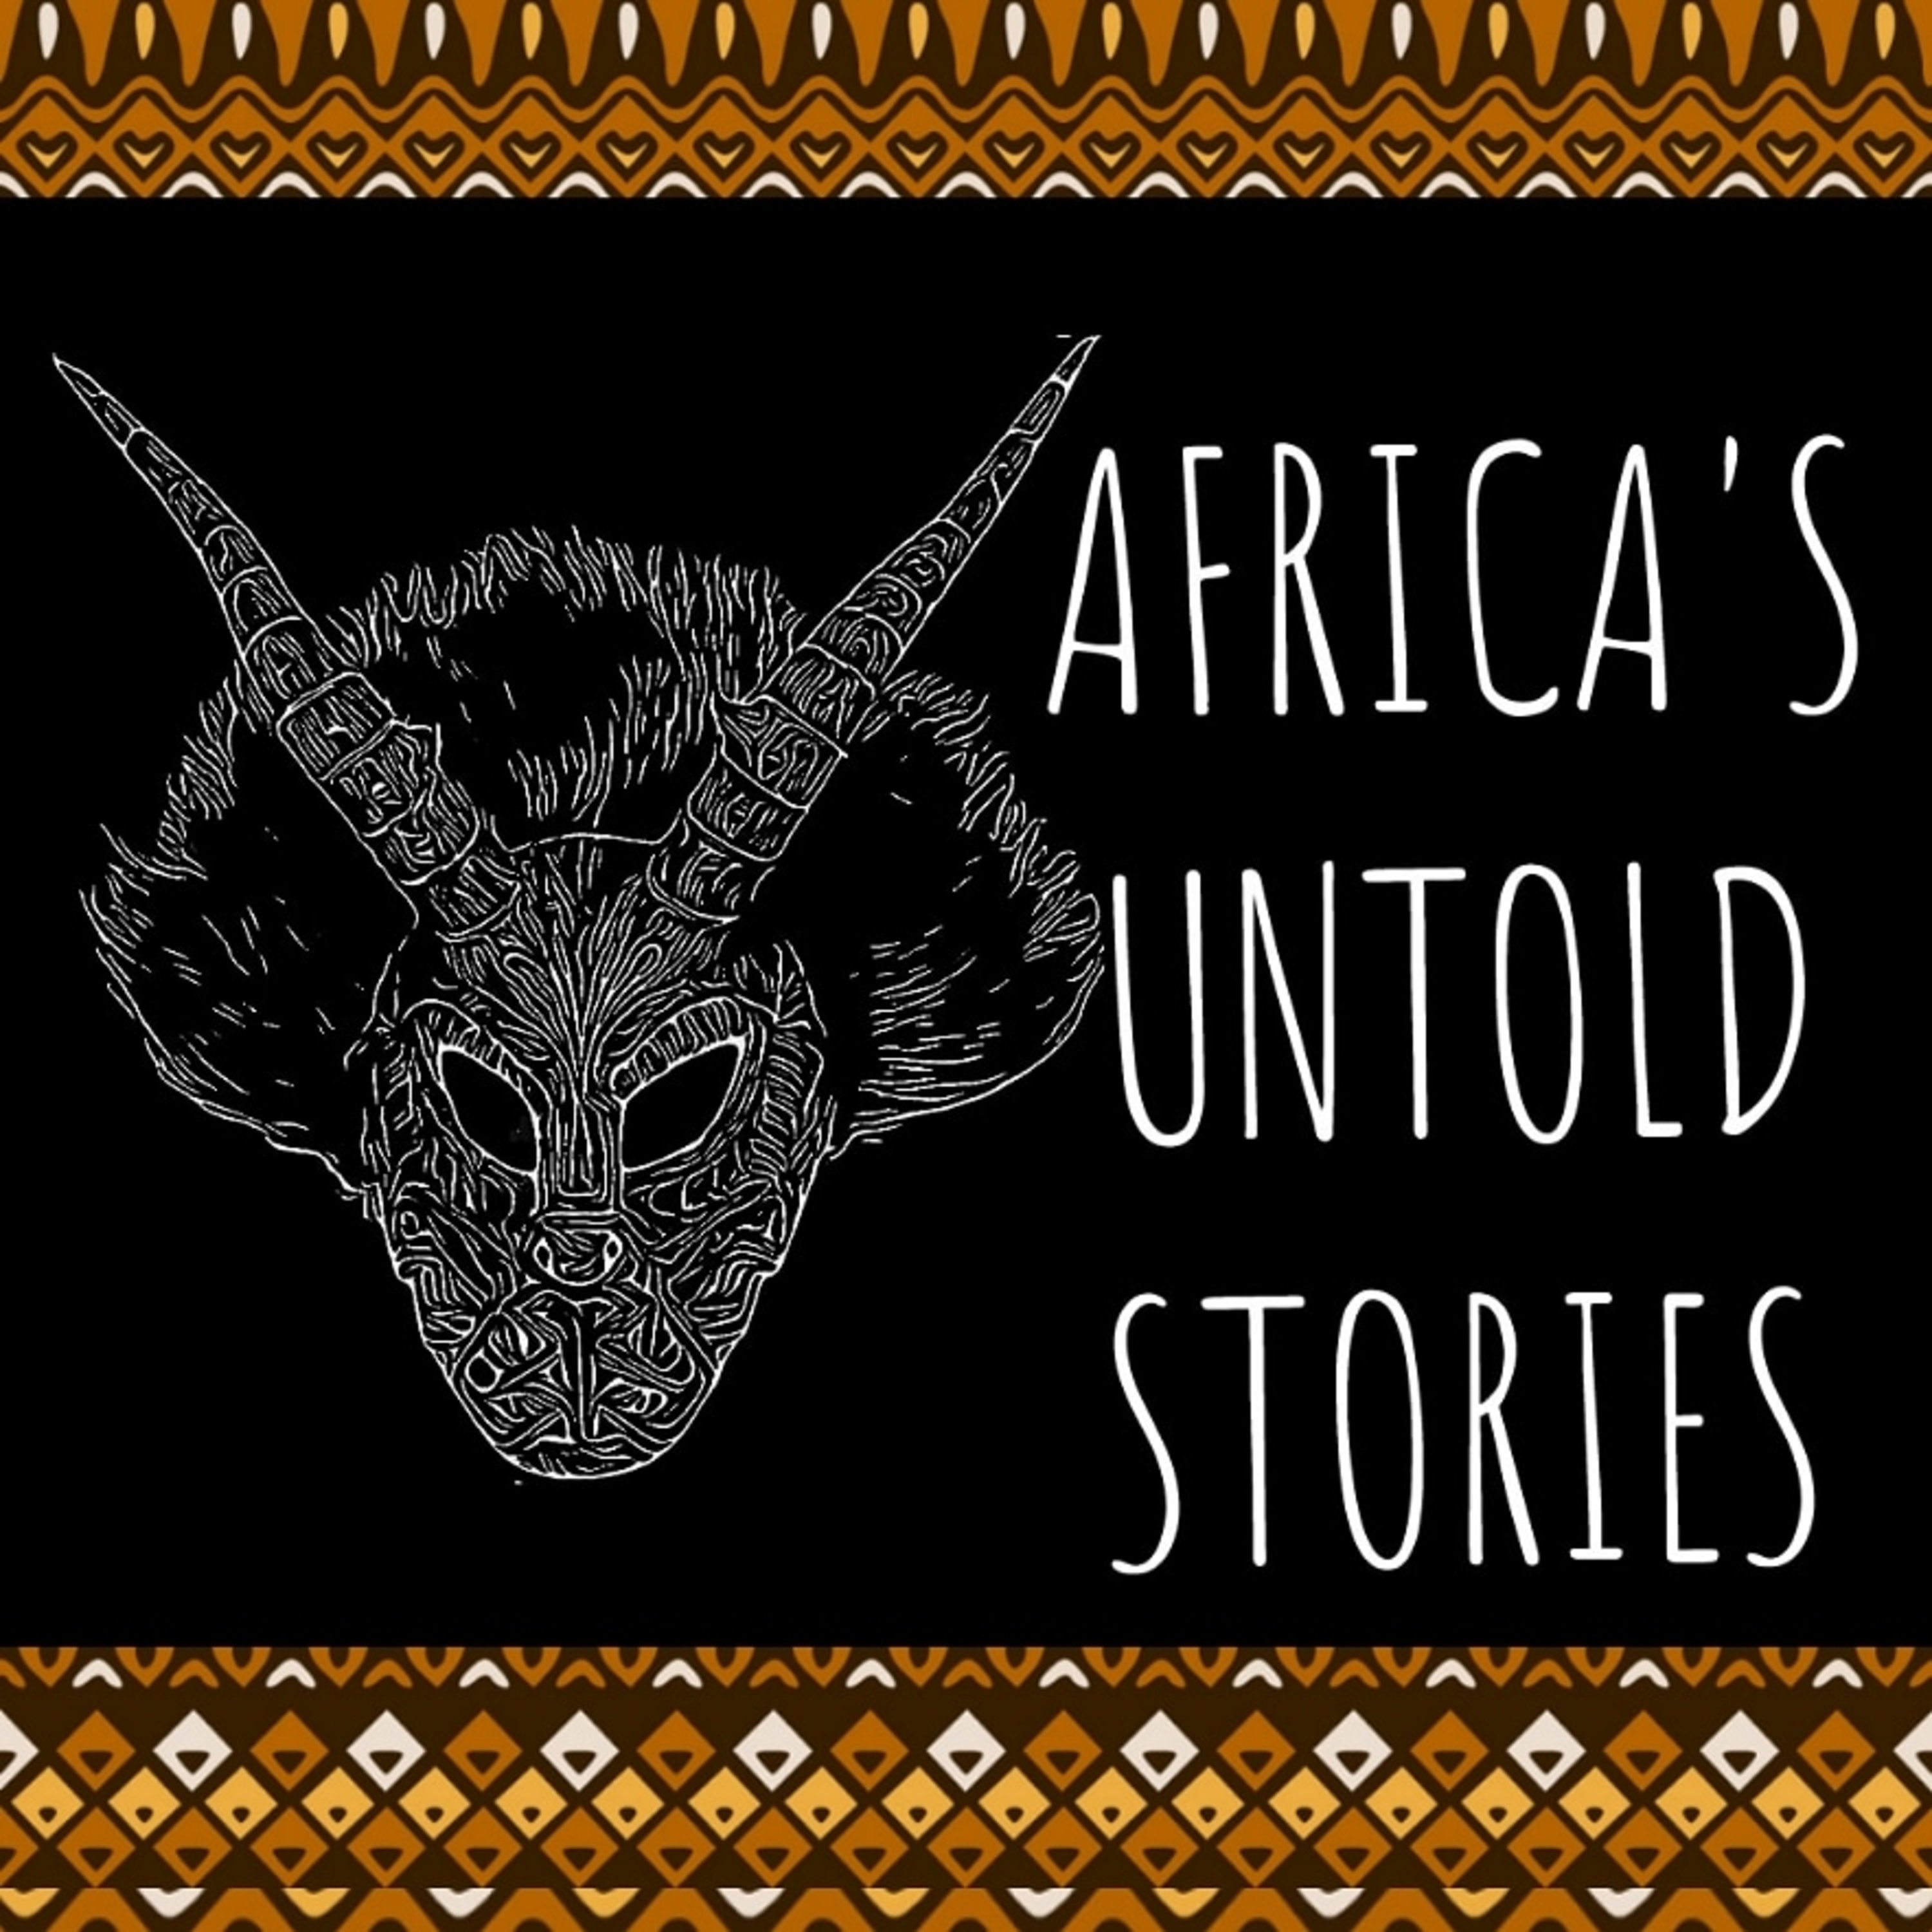 Africa's Untold Stories podcast